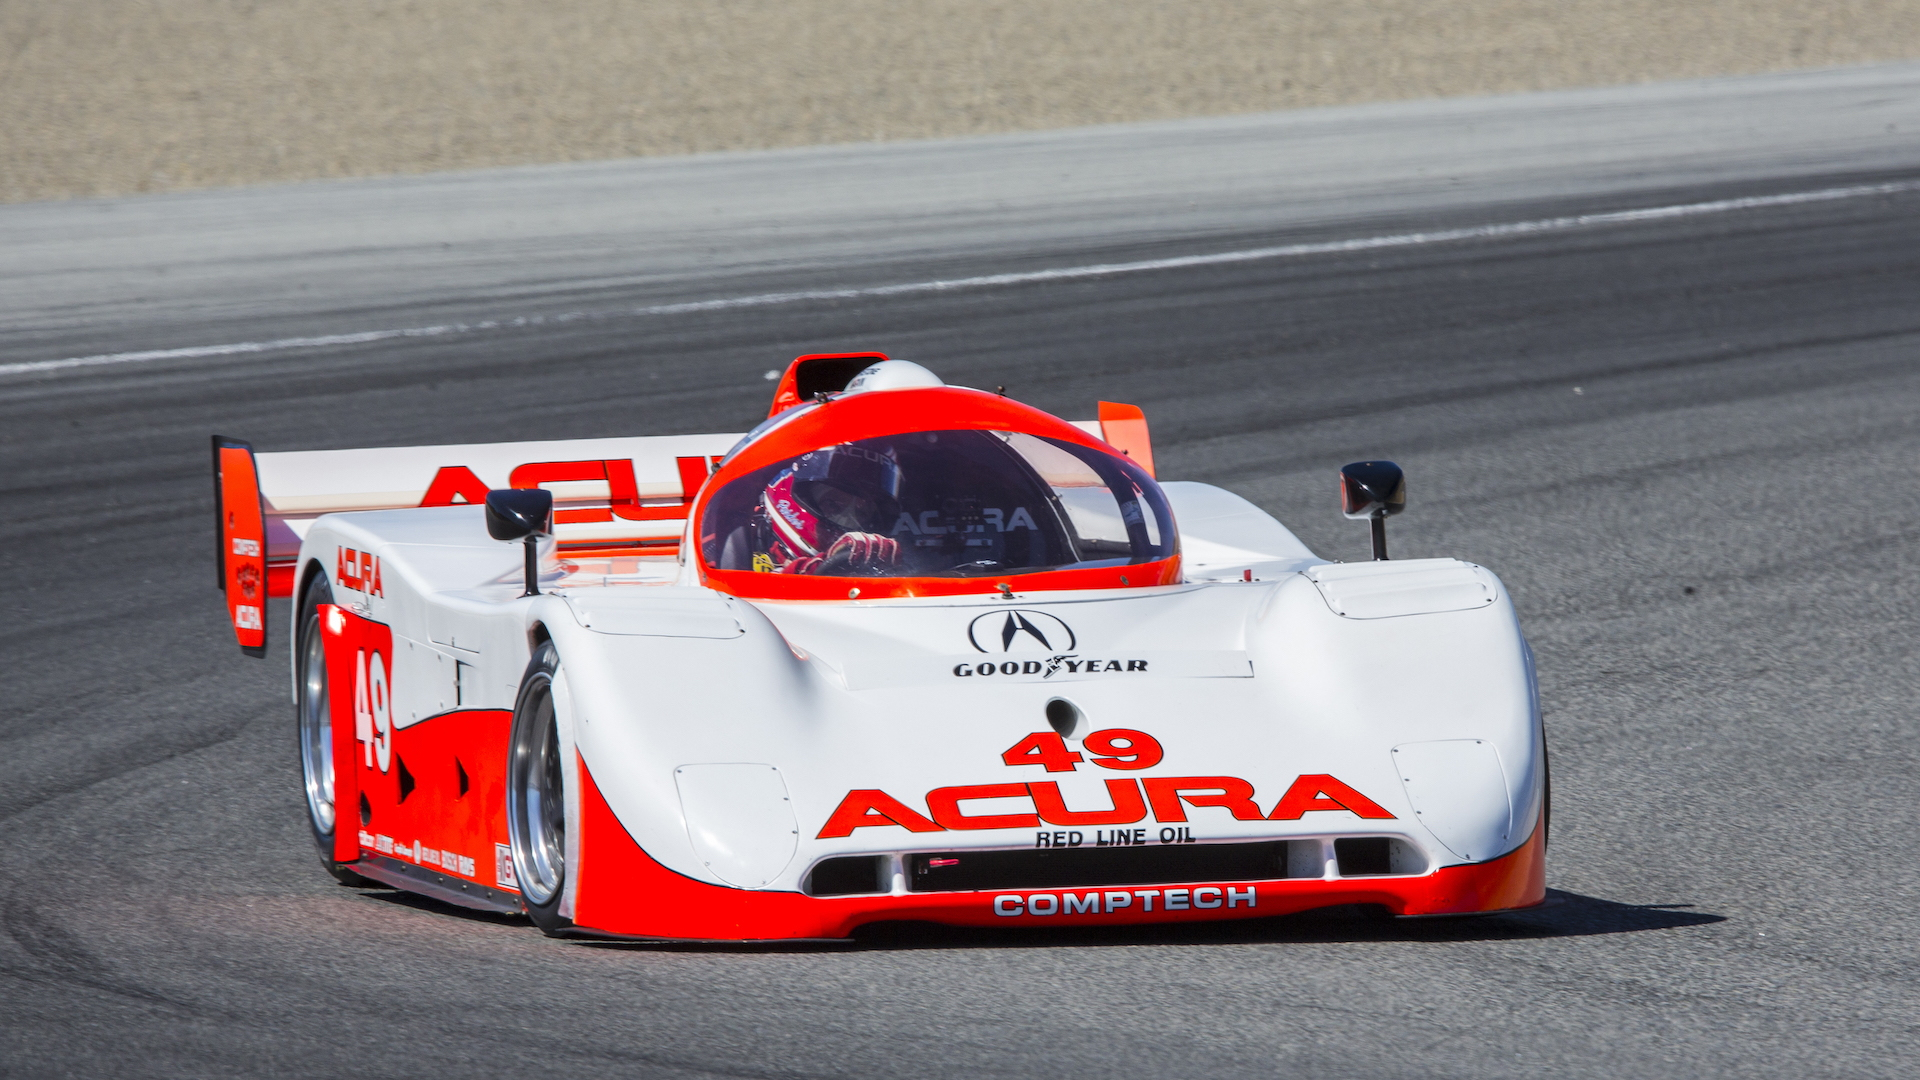 Comptech Racing Acura-Spice race car